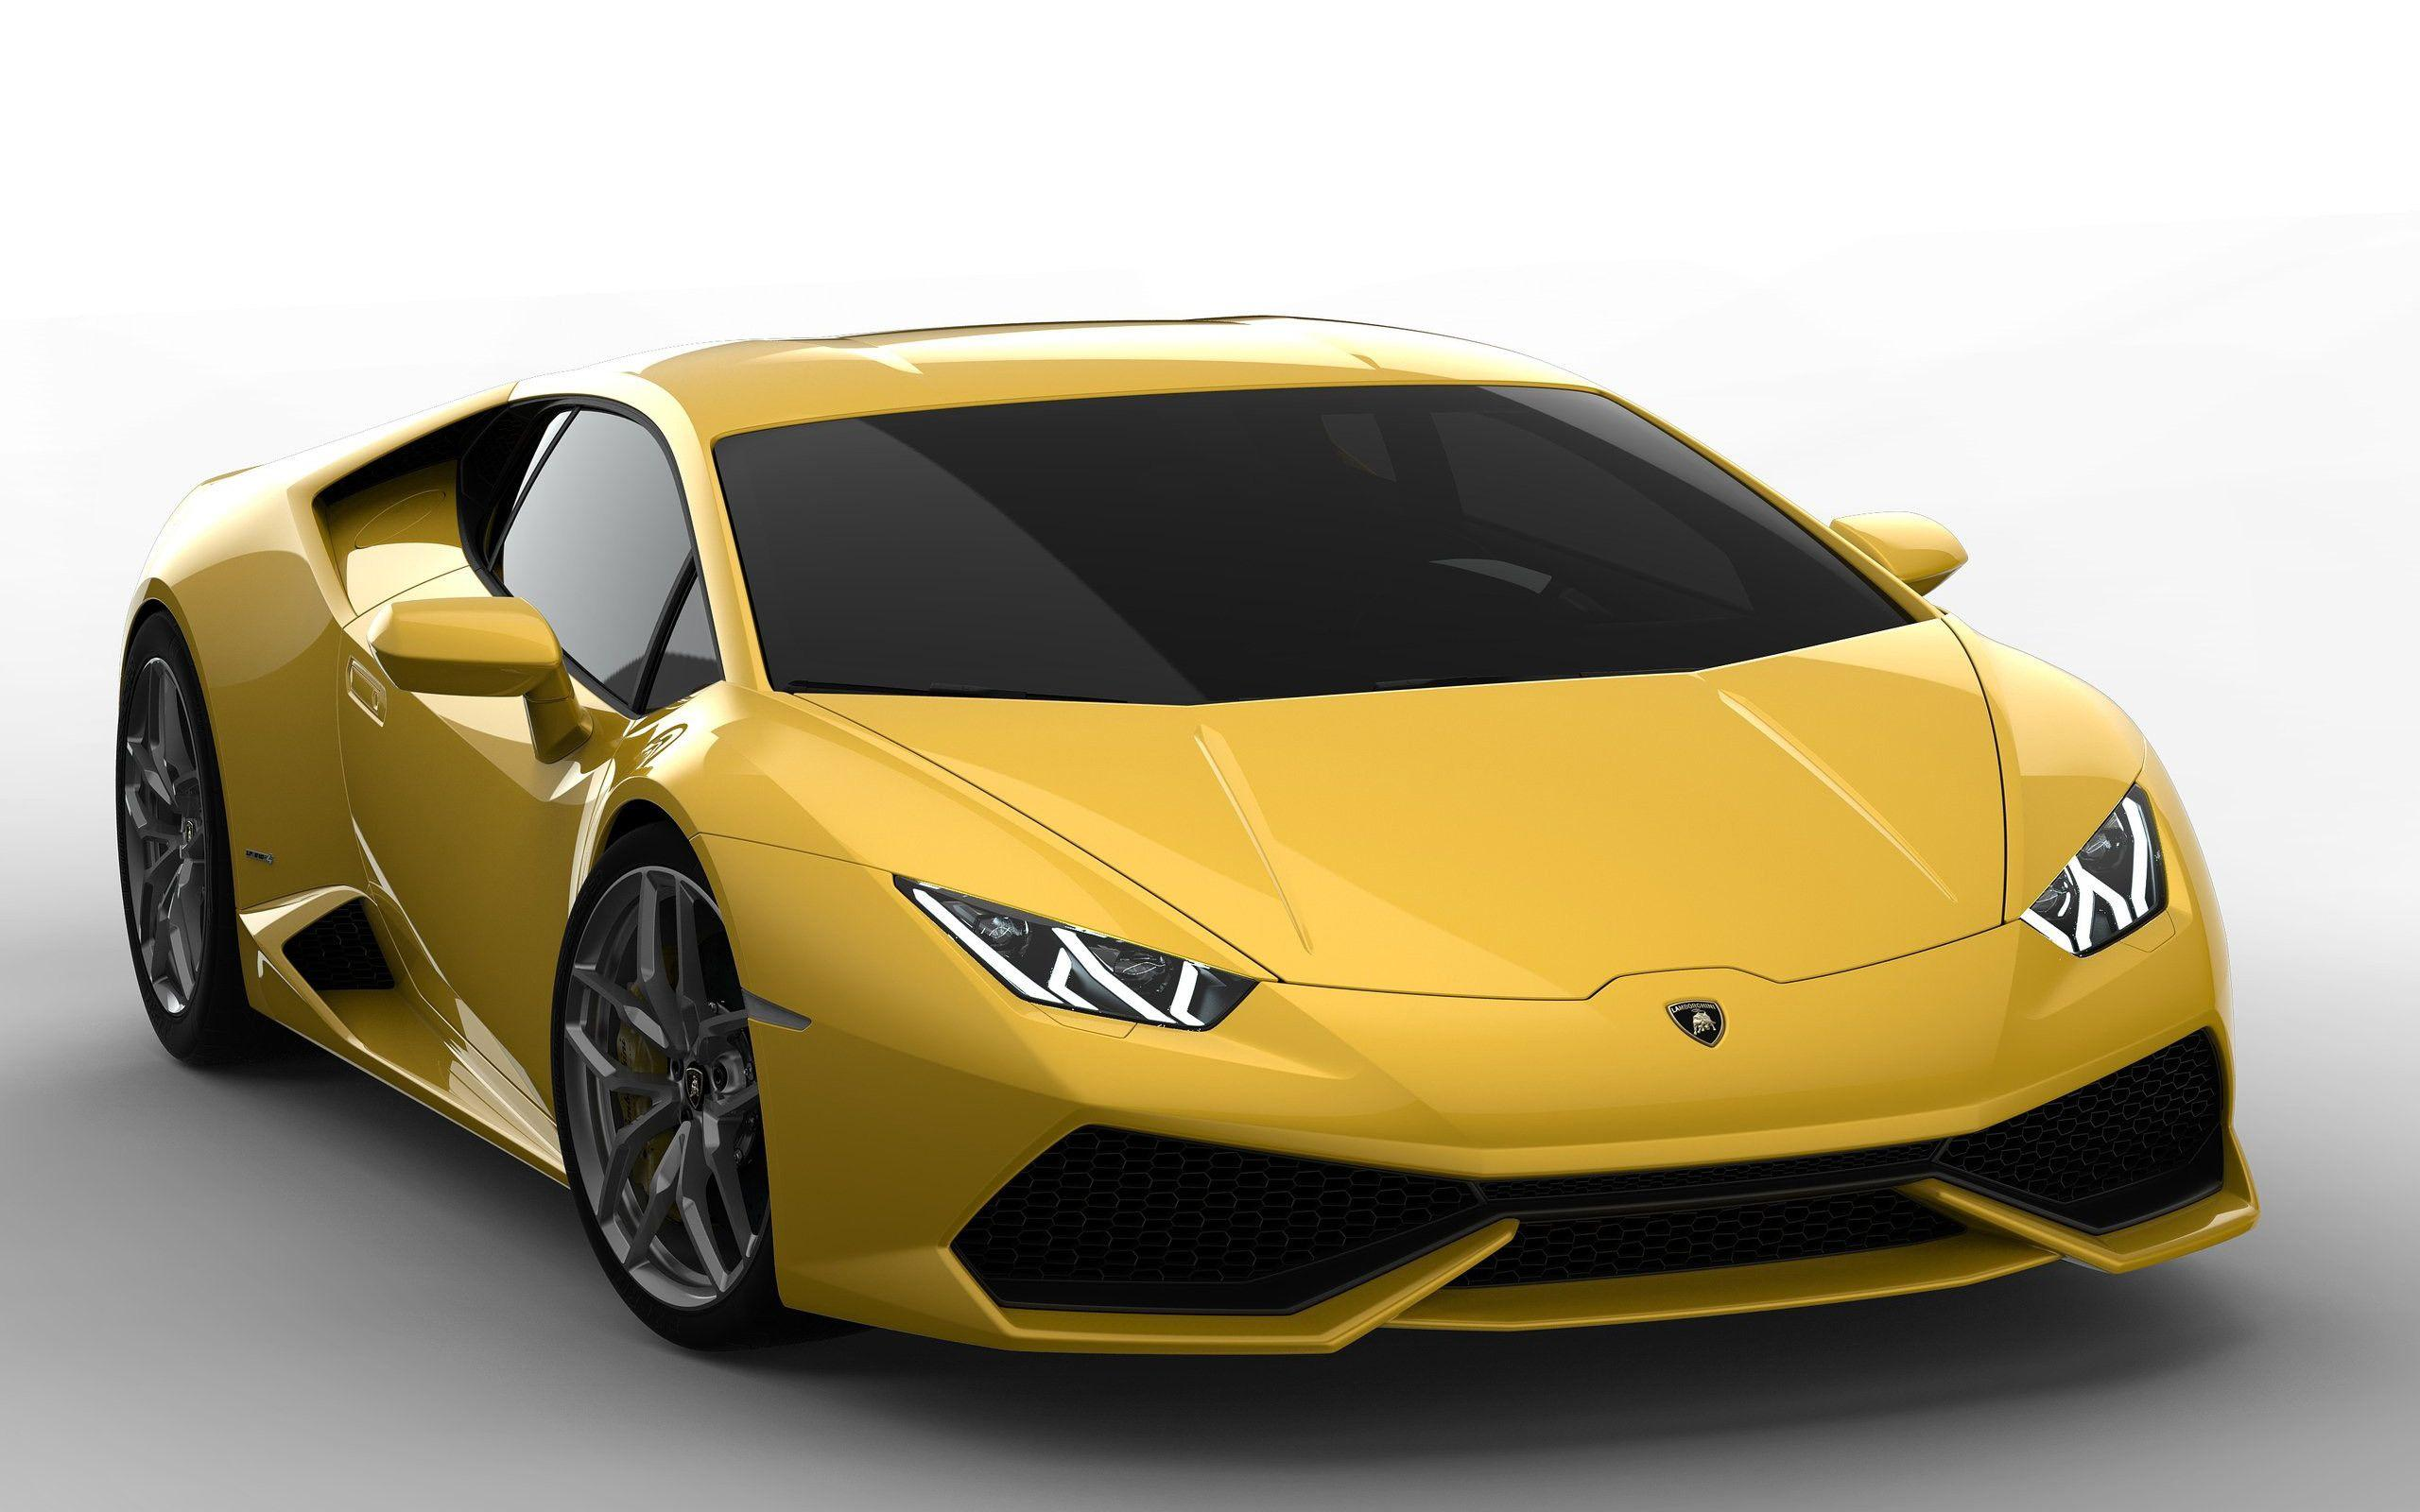 lamborghini huracan lp610 4 2015 wallpaper hd wallpapers - Lamborghini Huracan Wallpaper